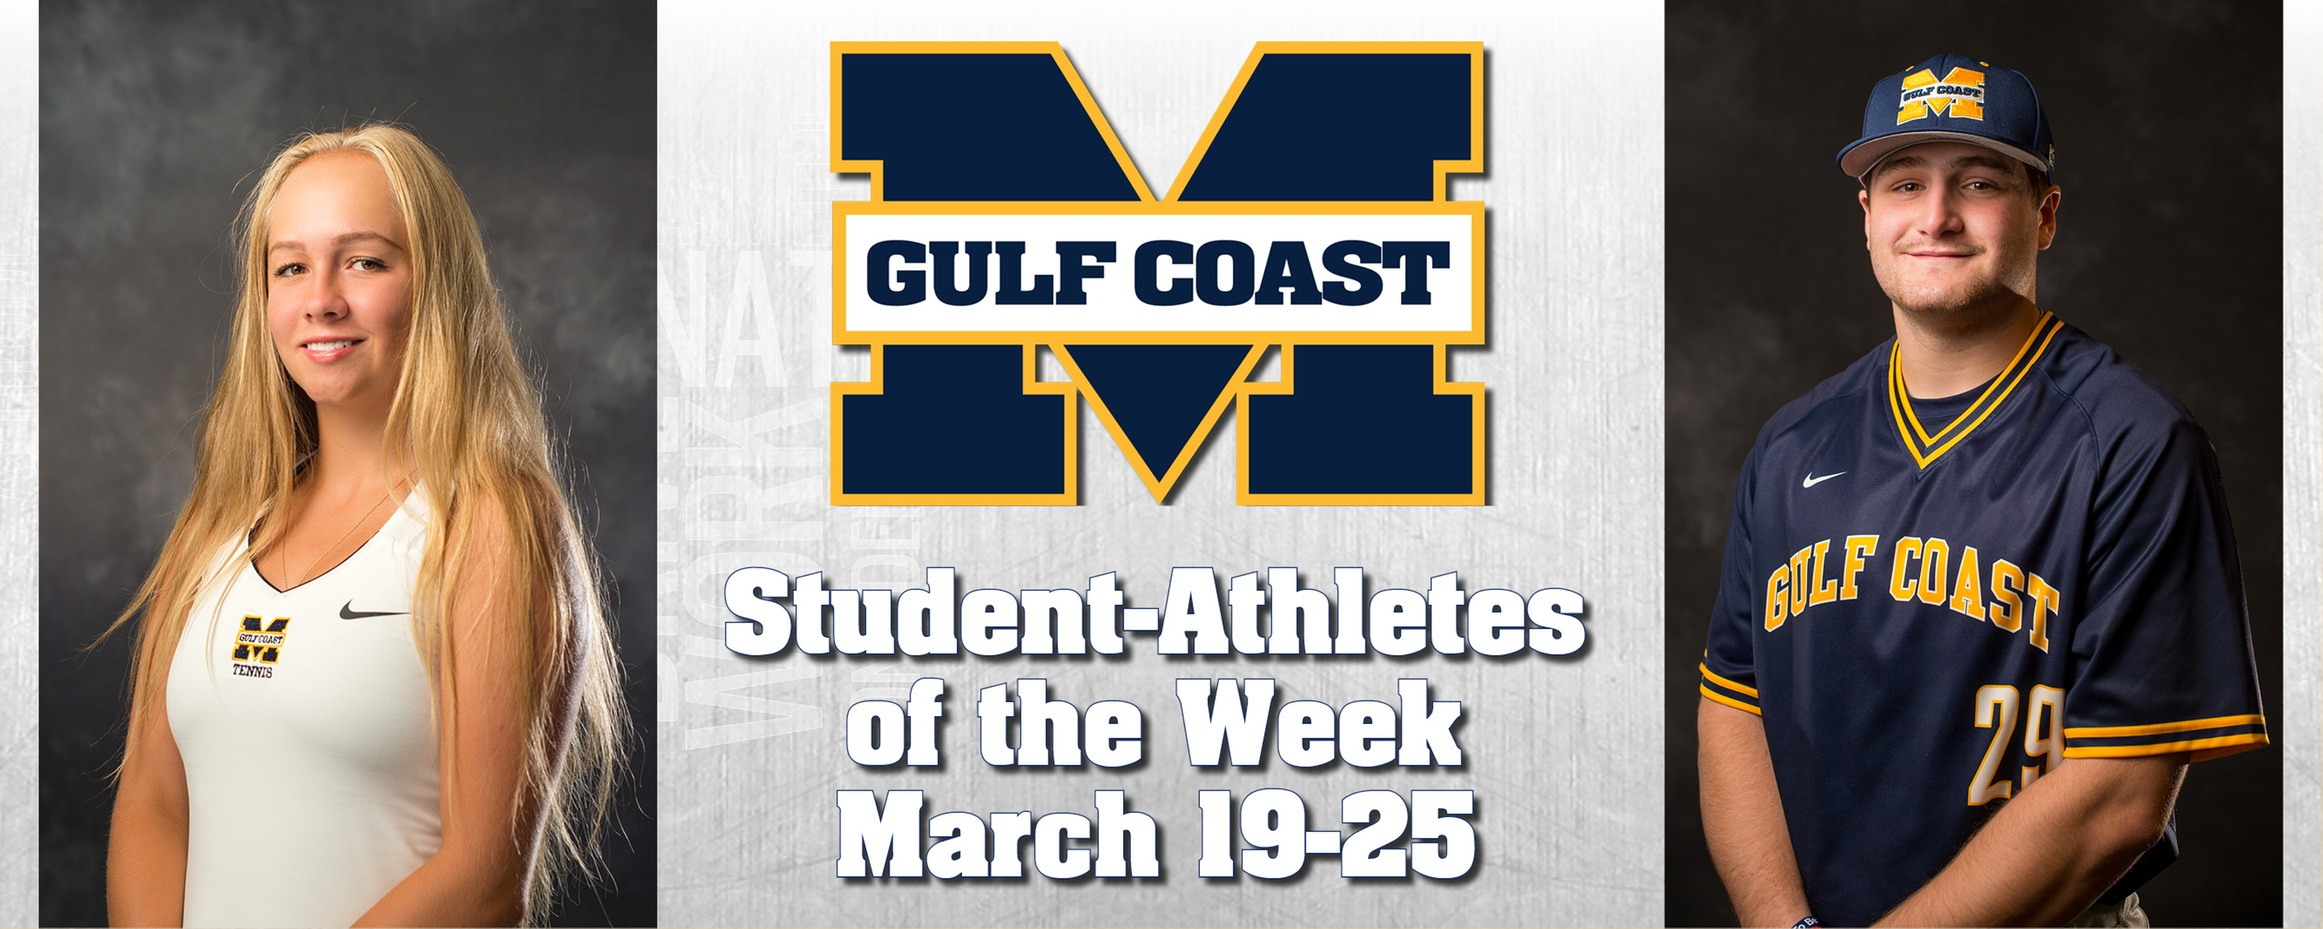 Lopareva, Davis named MGCCC Student-Athletes of the Week